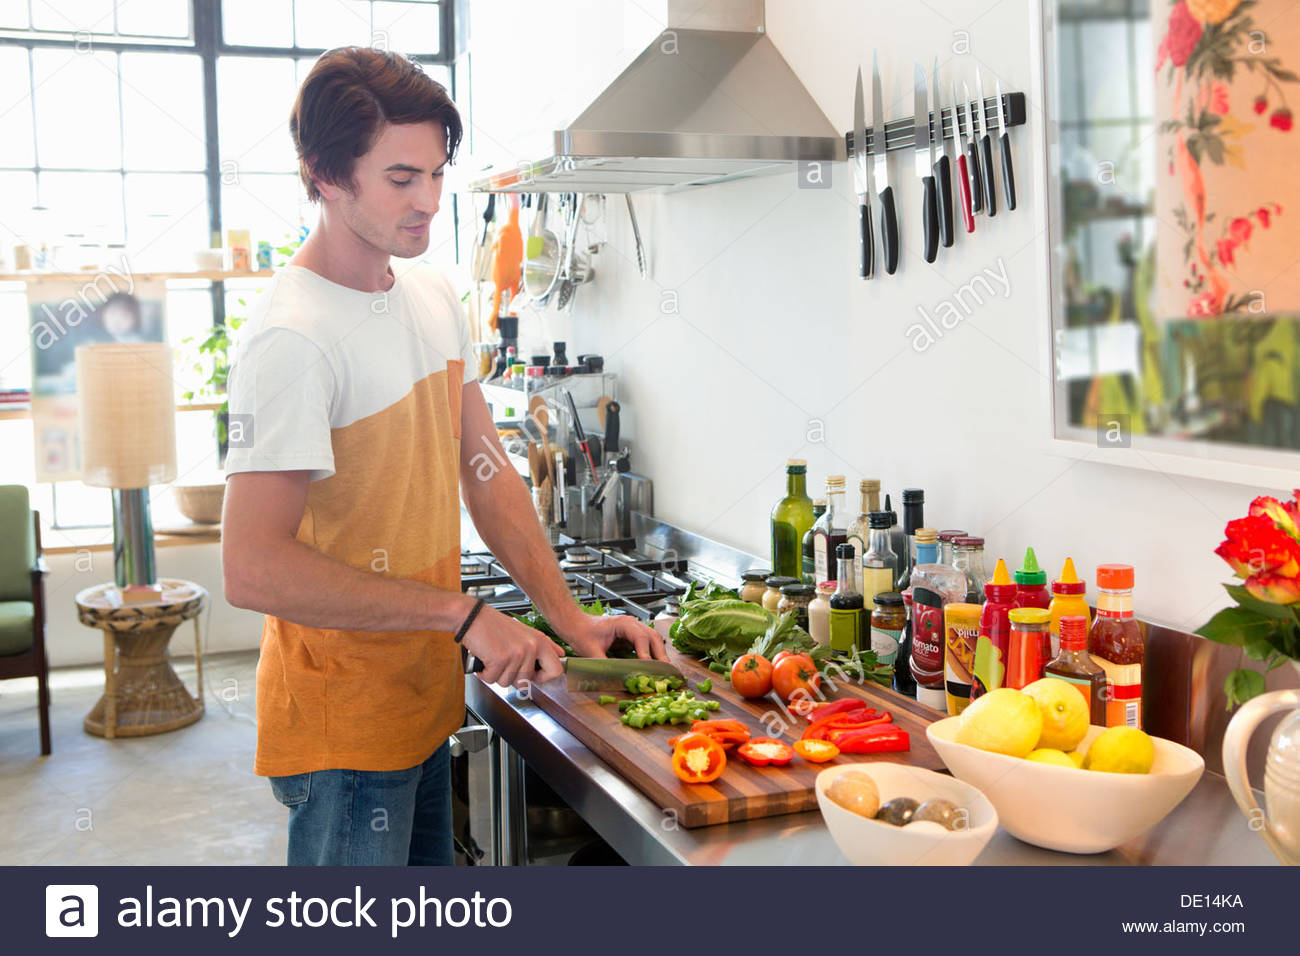 Man chopping vegetables in kitchen Photo Stock